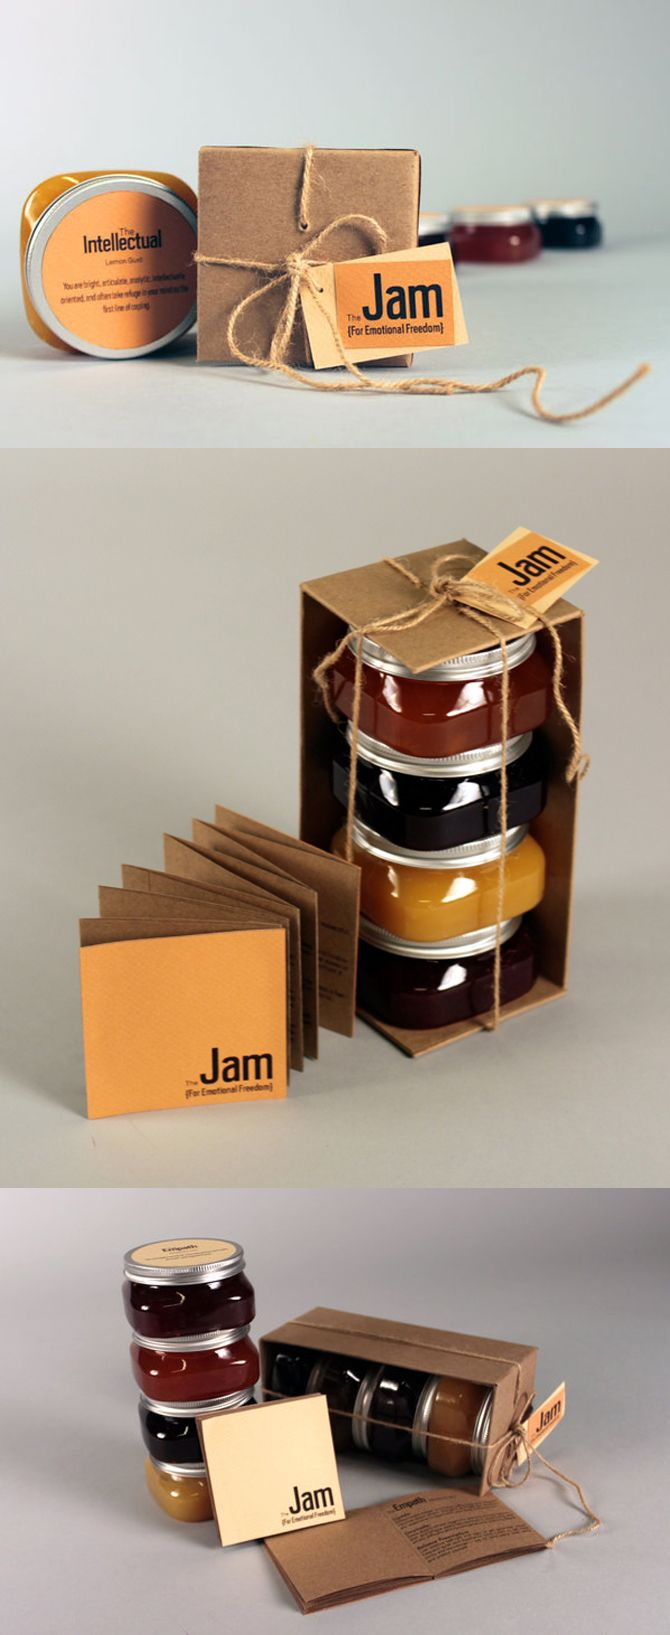 Through the years as packaging design has evolved it has kept the essence of the jam bottle and has also given new directions of creativity and innovation.